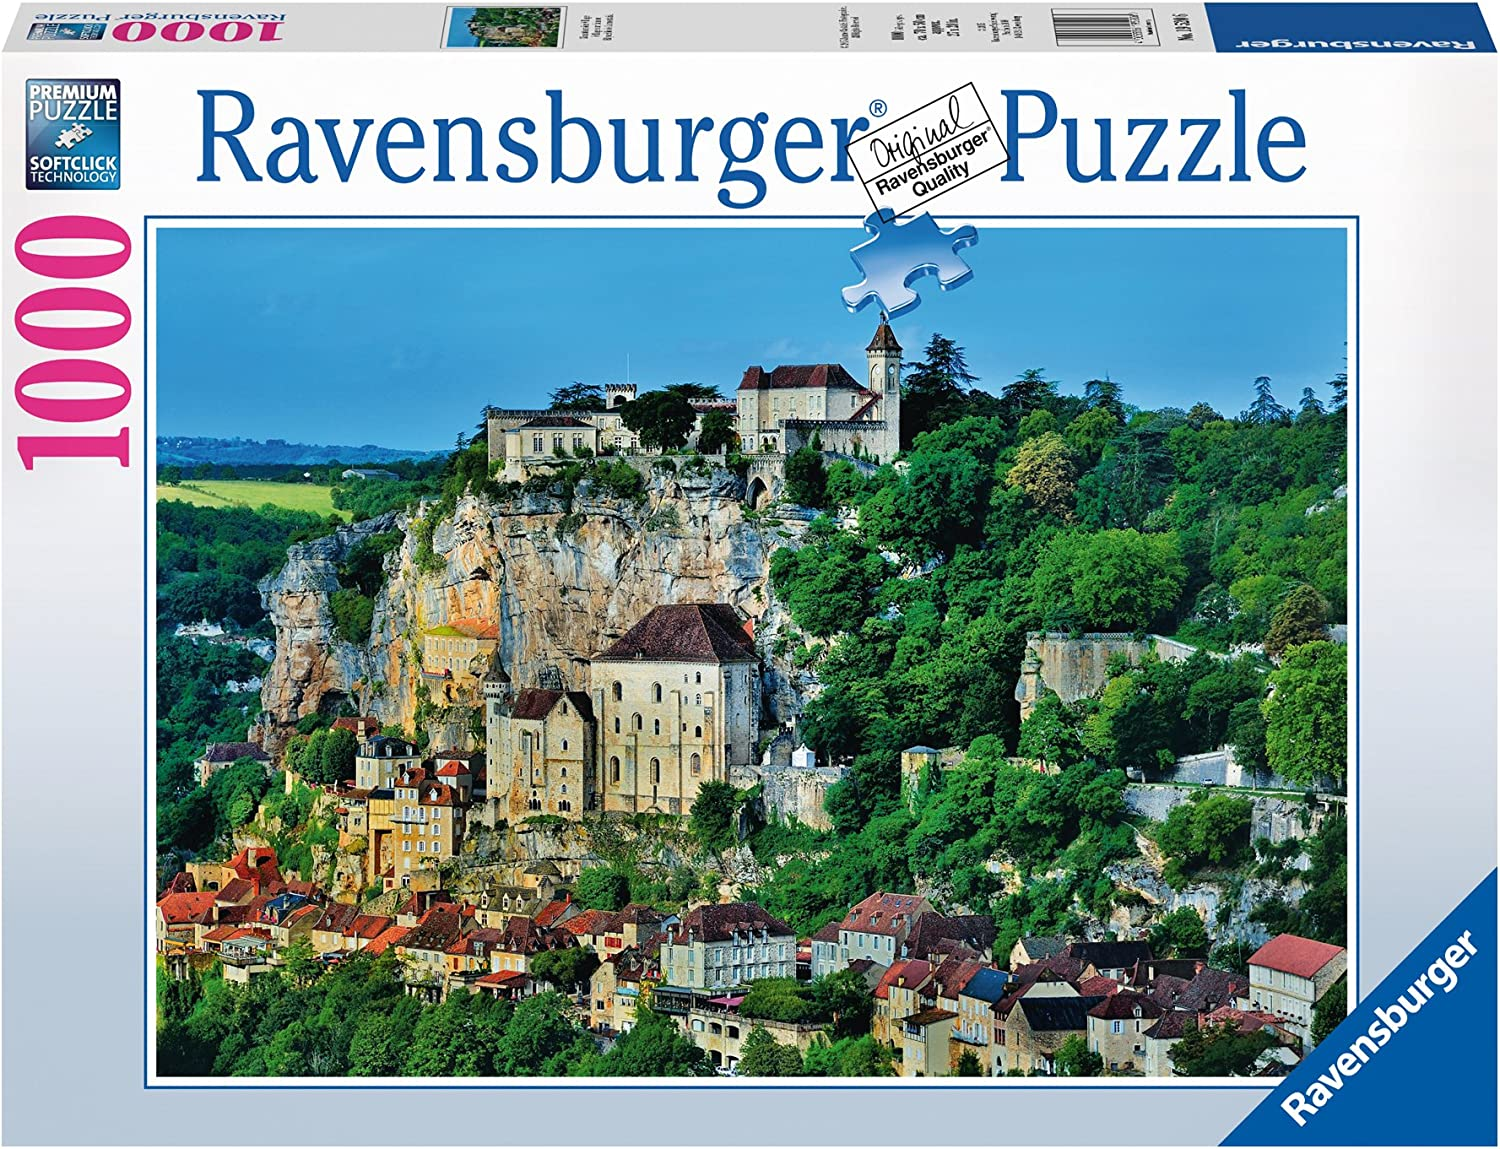 Ravensburger Mountainside Village 1000 Piece Jigsaw Puzzle for Adults – Every piece is unique, Softclick technology Means Pieces Fit Together Perfectly